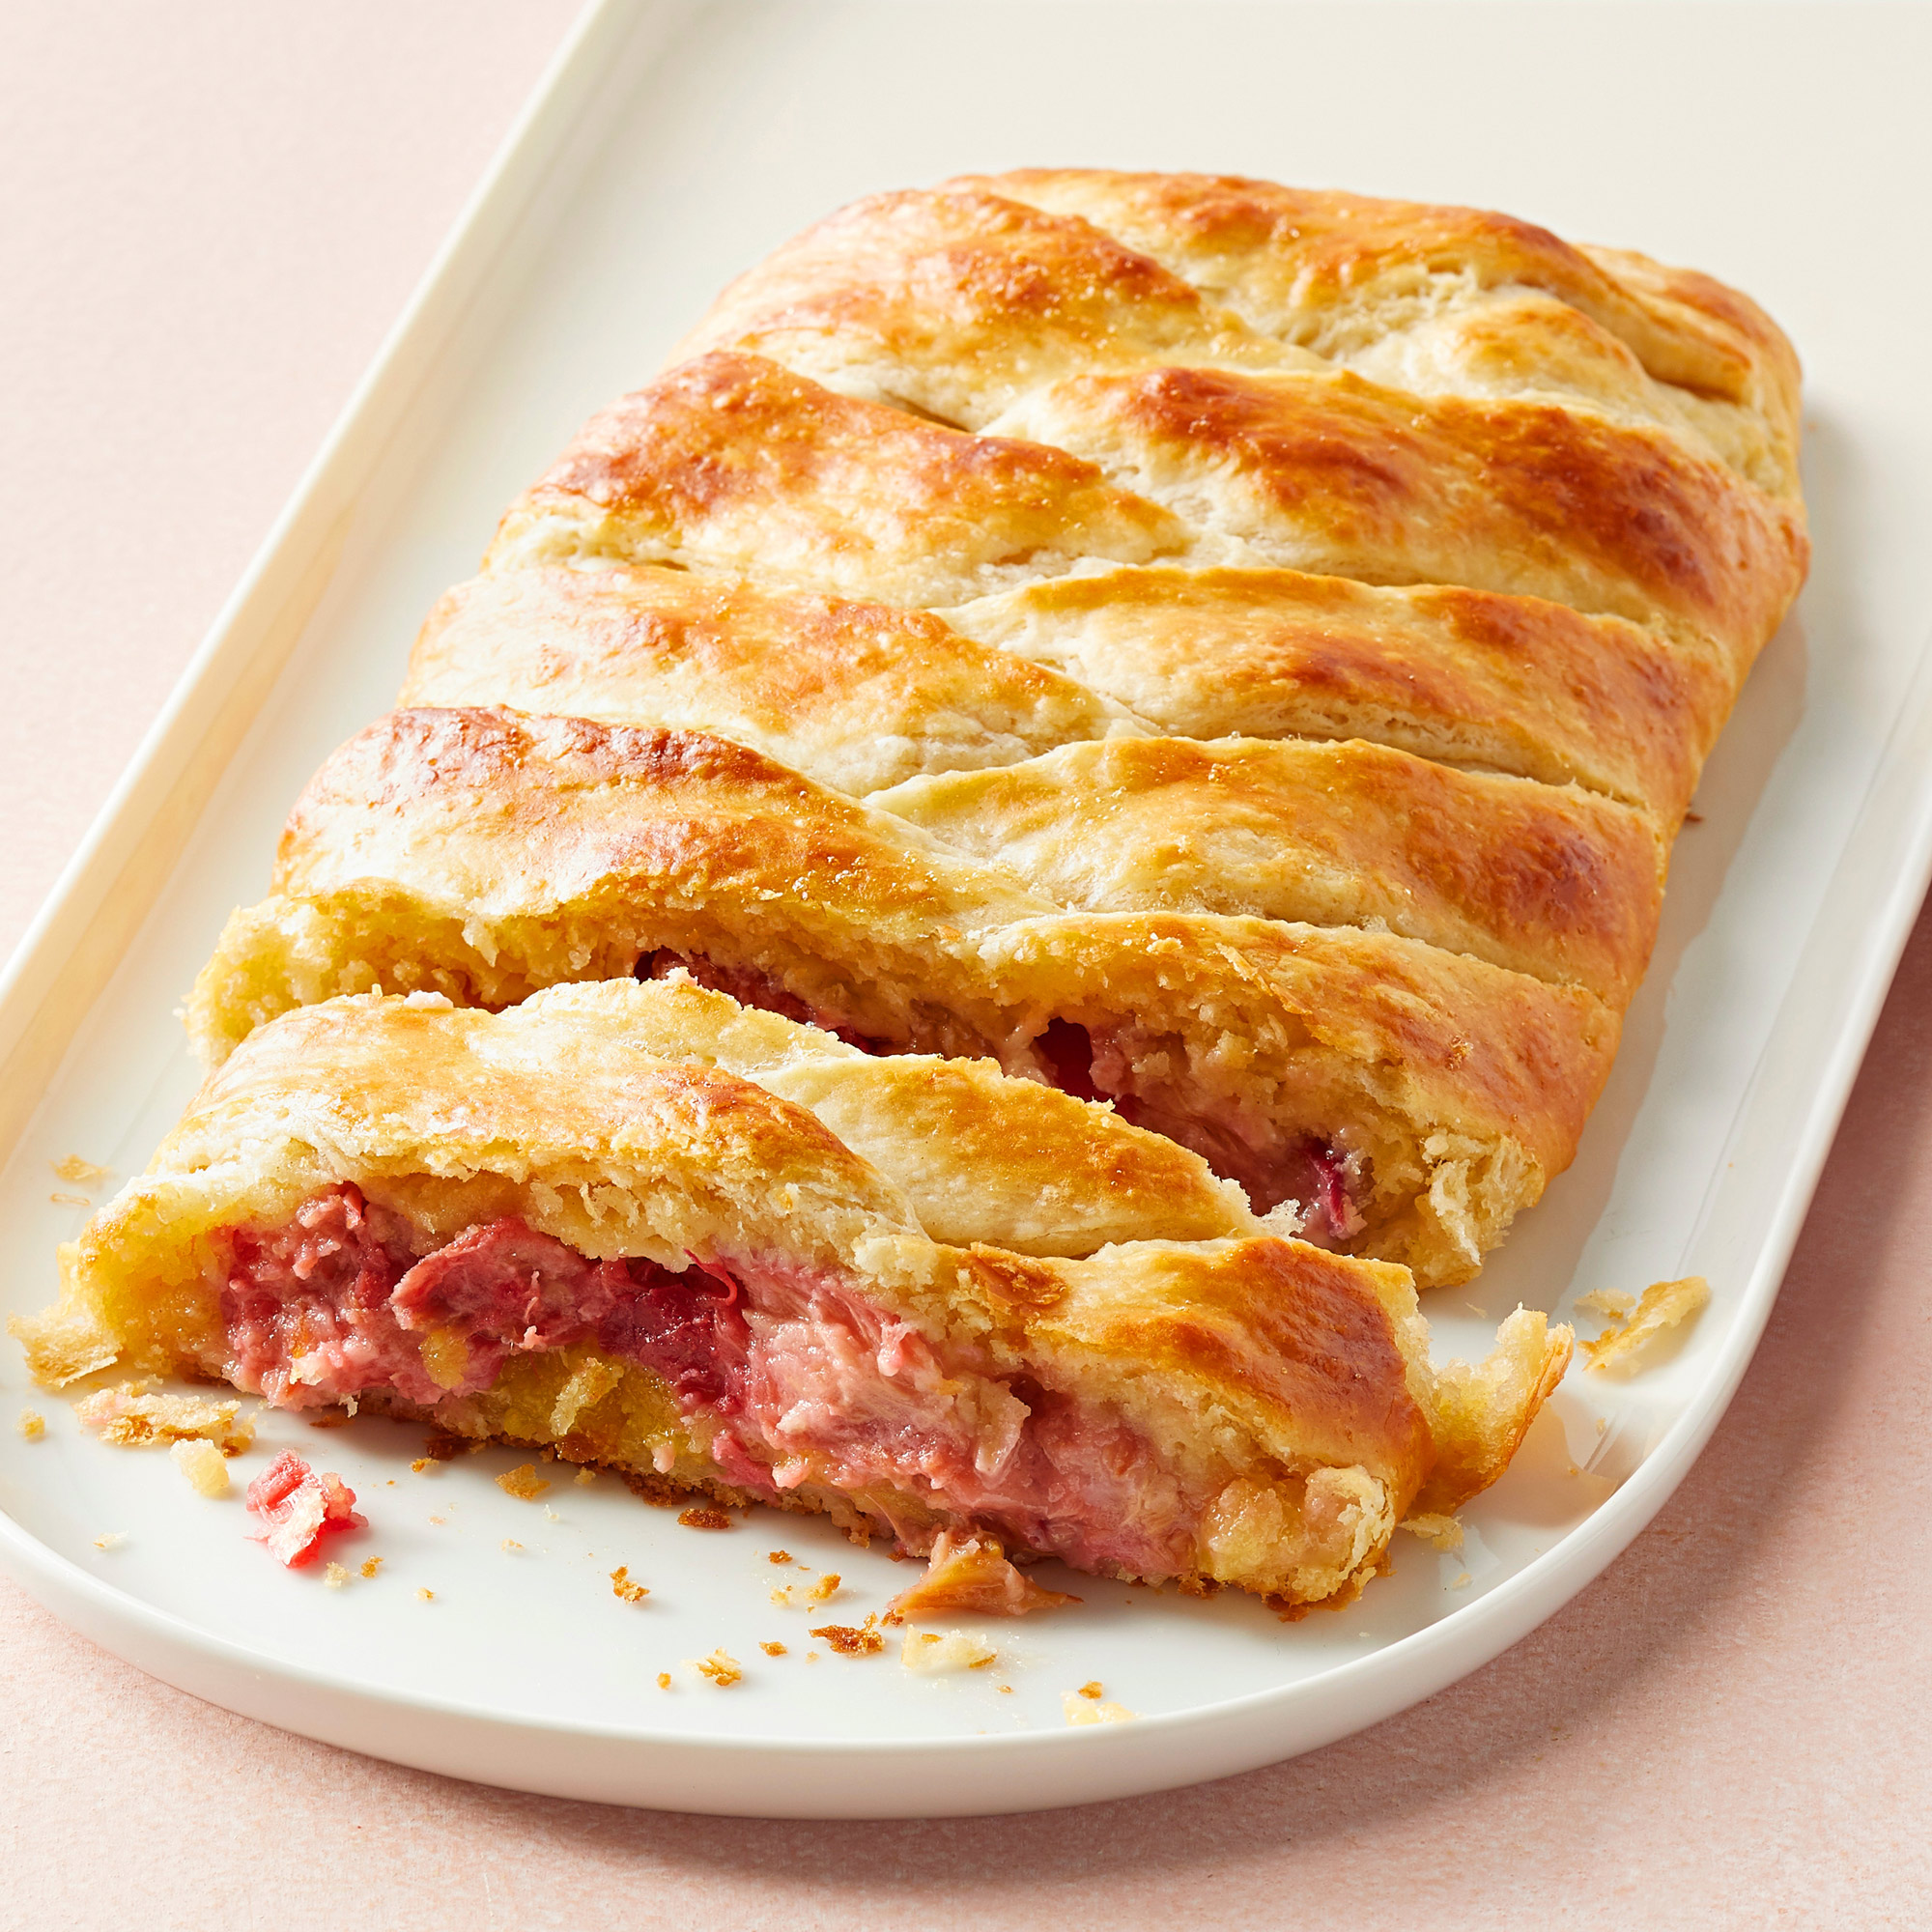 Rhubarb-Almond Danish Braid